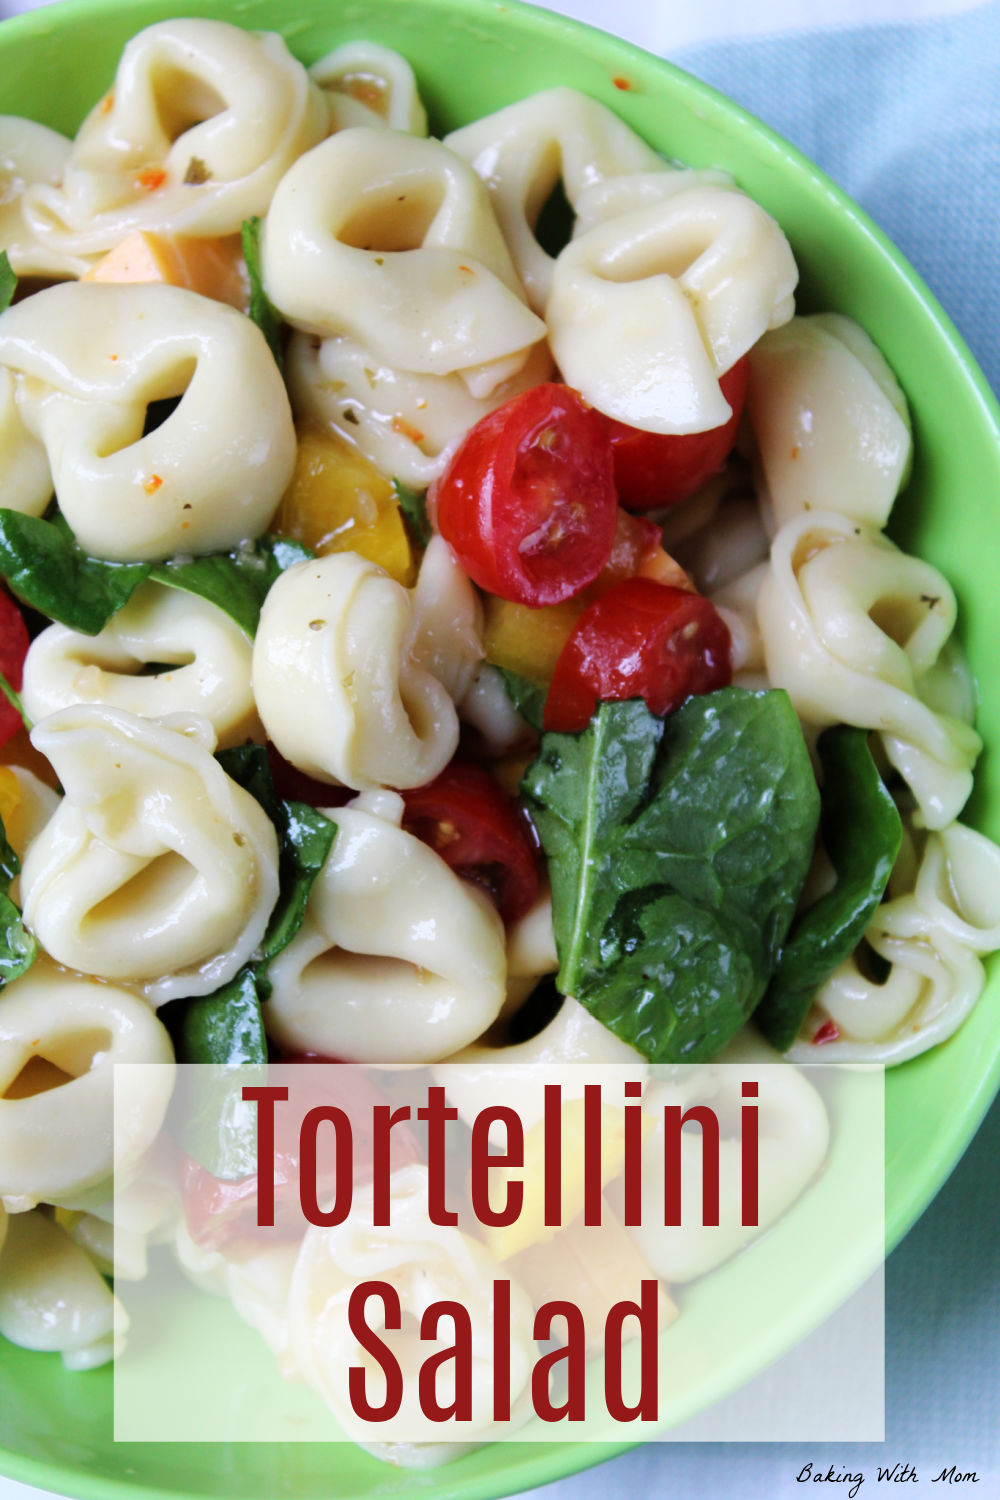 Bowl of tortellini, spinach, tomatoes in a green bowl.